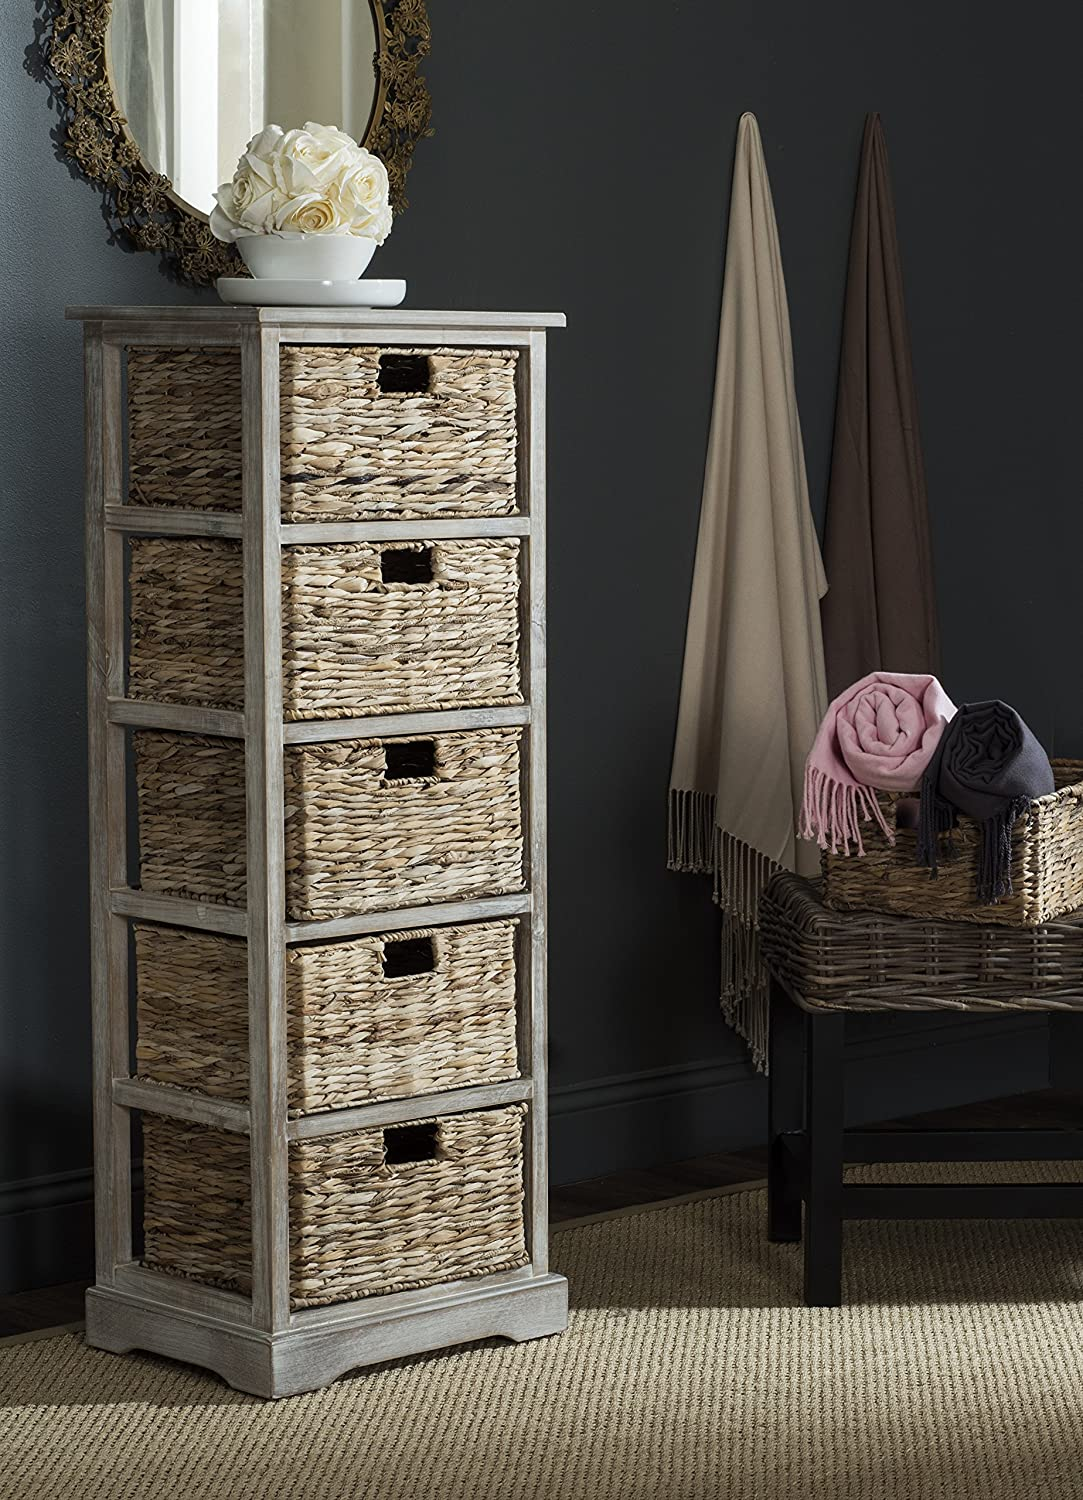 Safavieh American Homes Collection Vedette Cherry 5 Wicker Basket Storage Tower AMH5739C